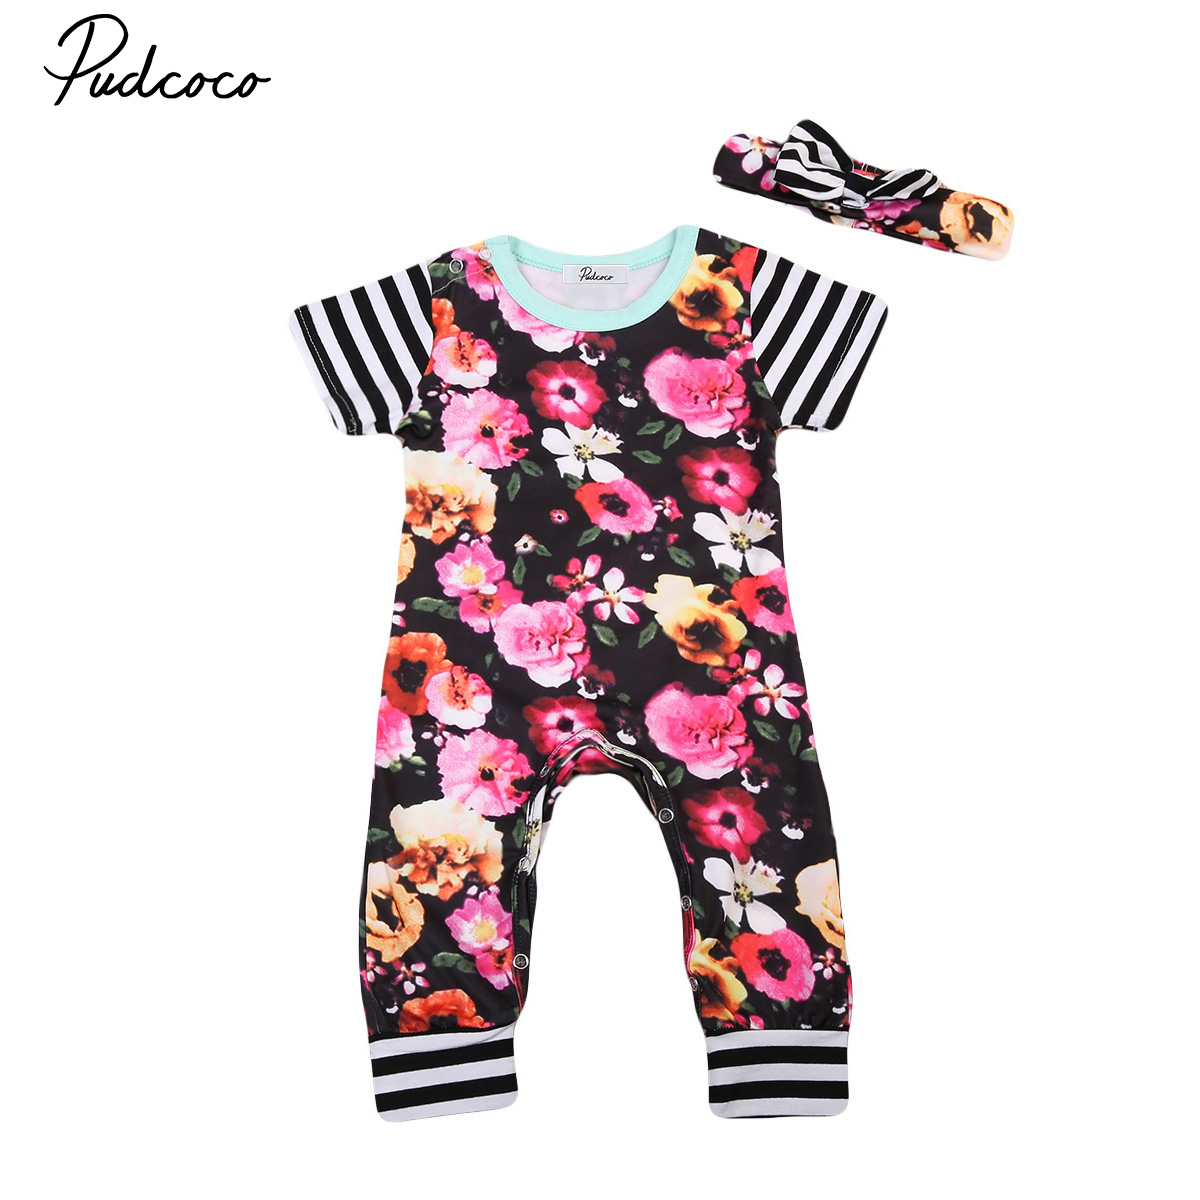 Pudcoco Newborn Infant Baby Girls Clothes Short Sleeve Floral Romper +Headband Summer Cute Cotton One-Piece Clothes 3pcs set newborn infant baby boy girl clothes 2017 summer short sleeve leopard floral romper bodysuit headband shoes outfits